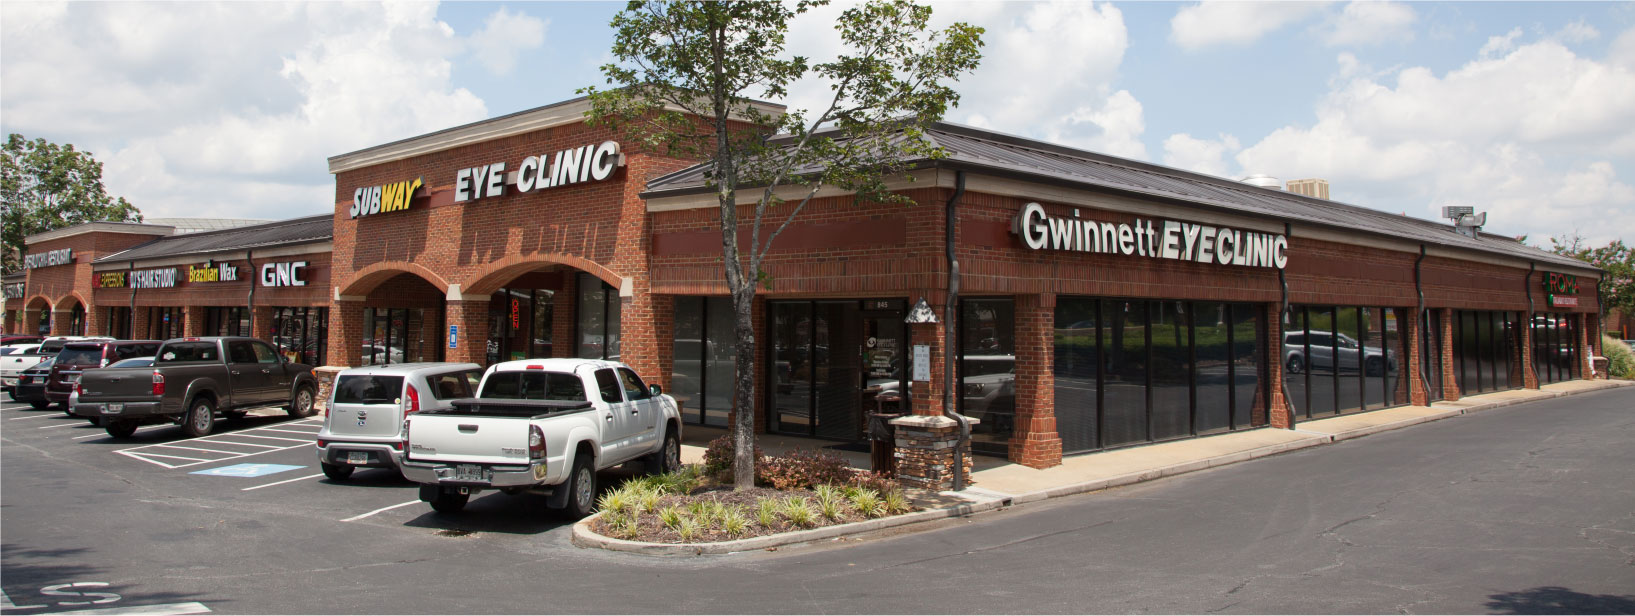 gwinnett eye care